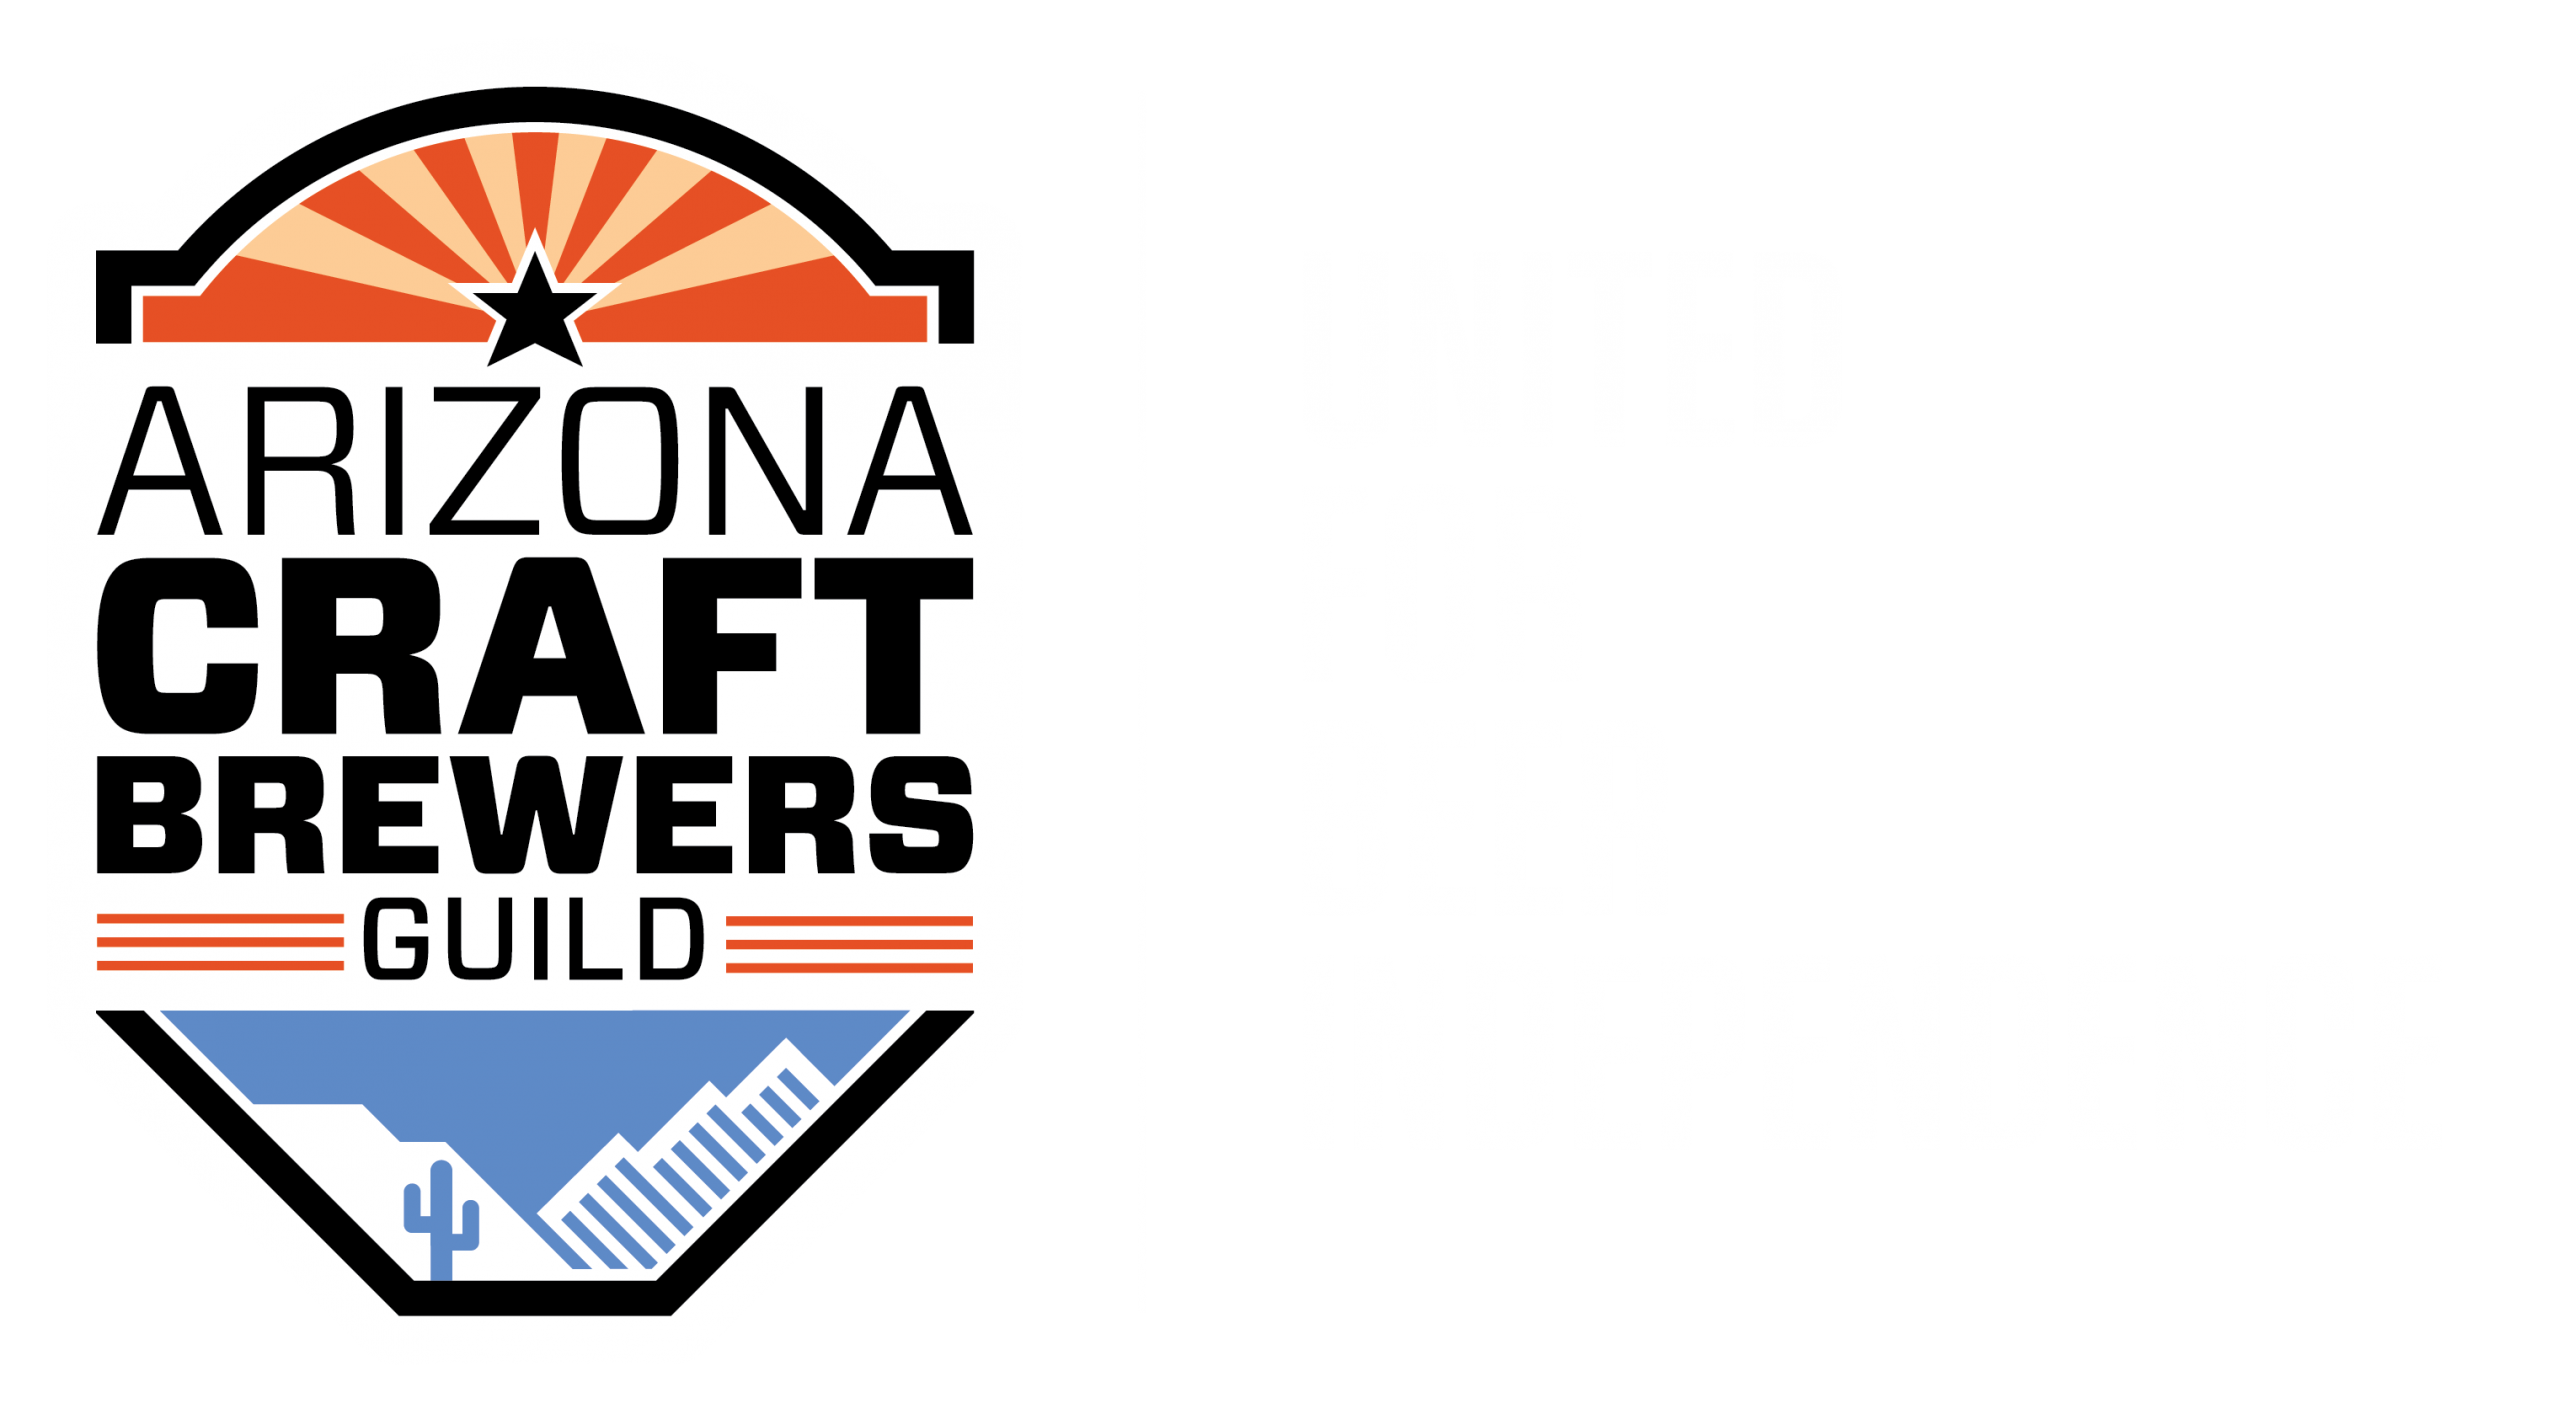 Arizona Local | Arizona Craft Brewers Guild